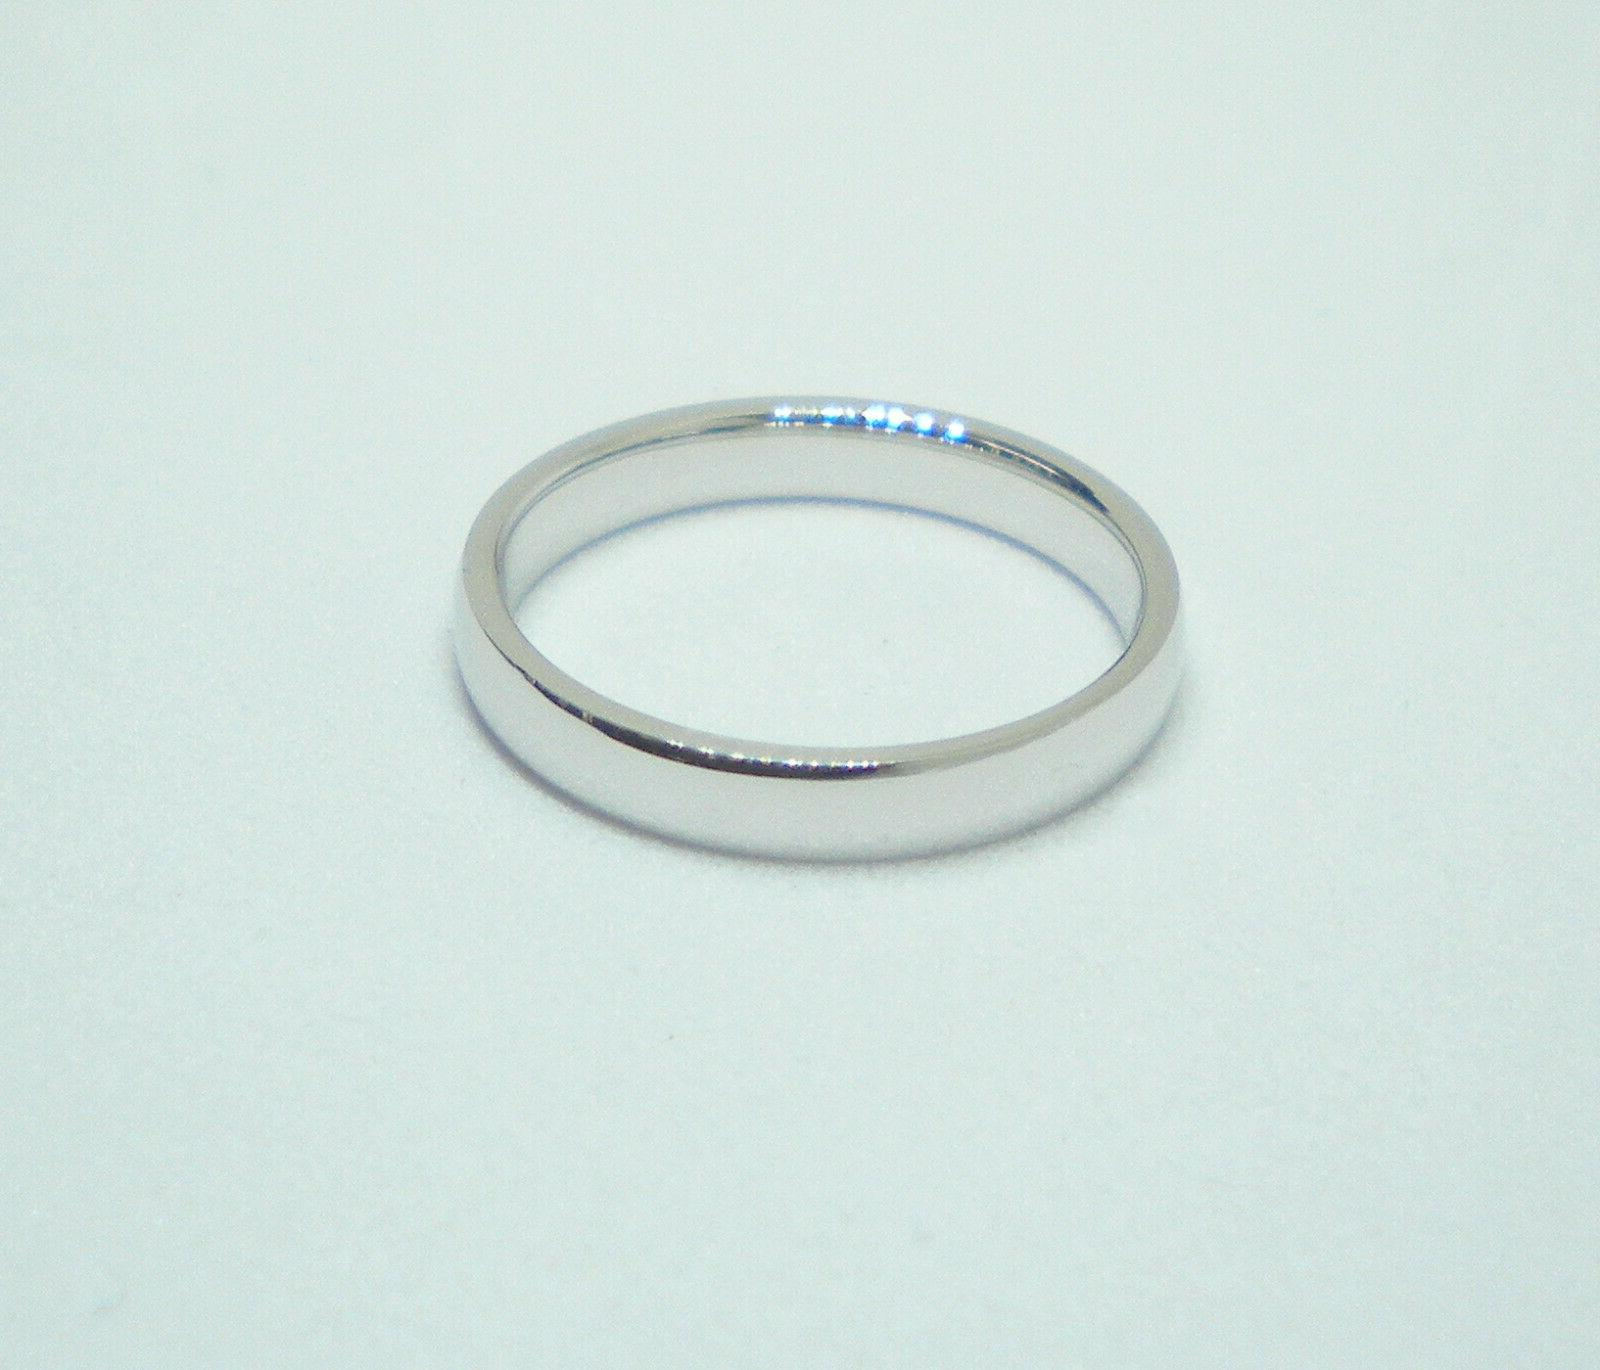 3 mm Band 2.9 g USA Ring Women's